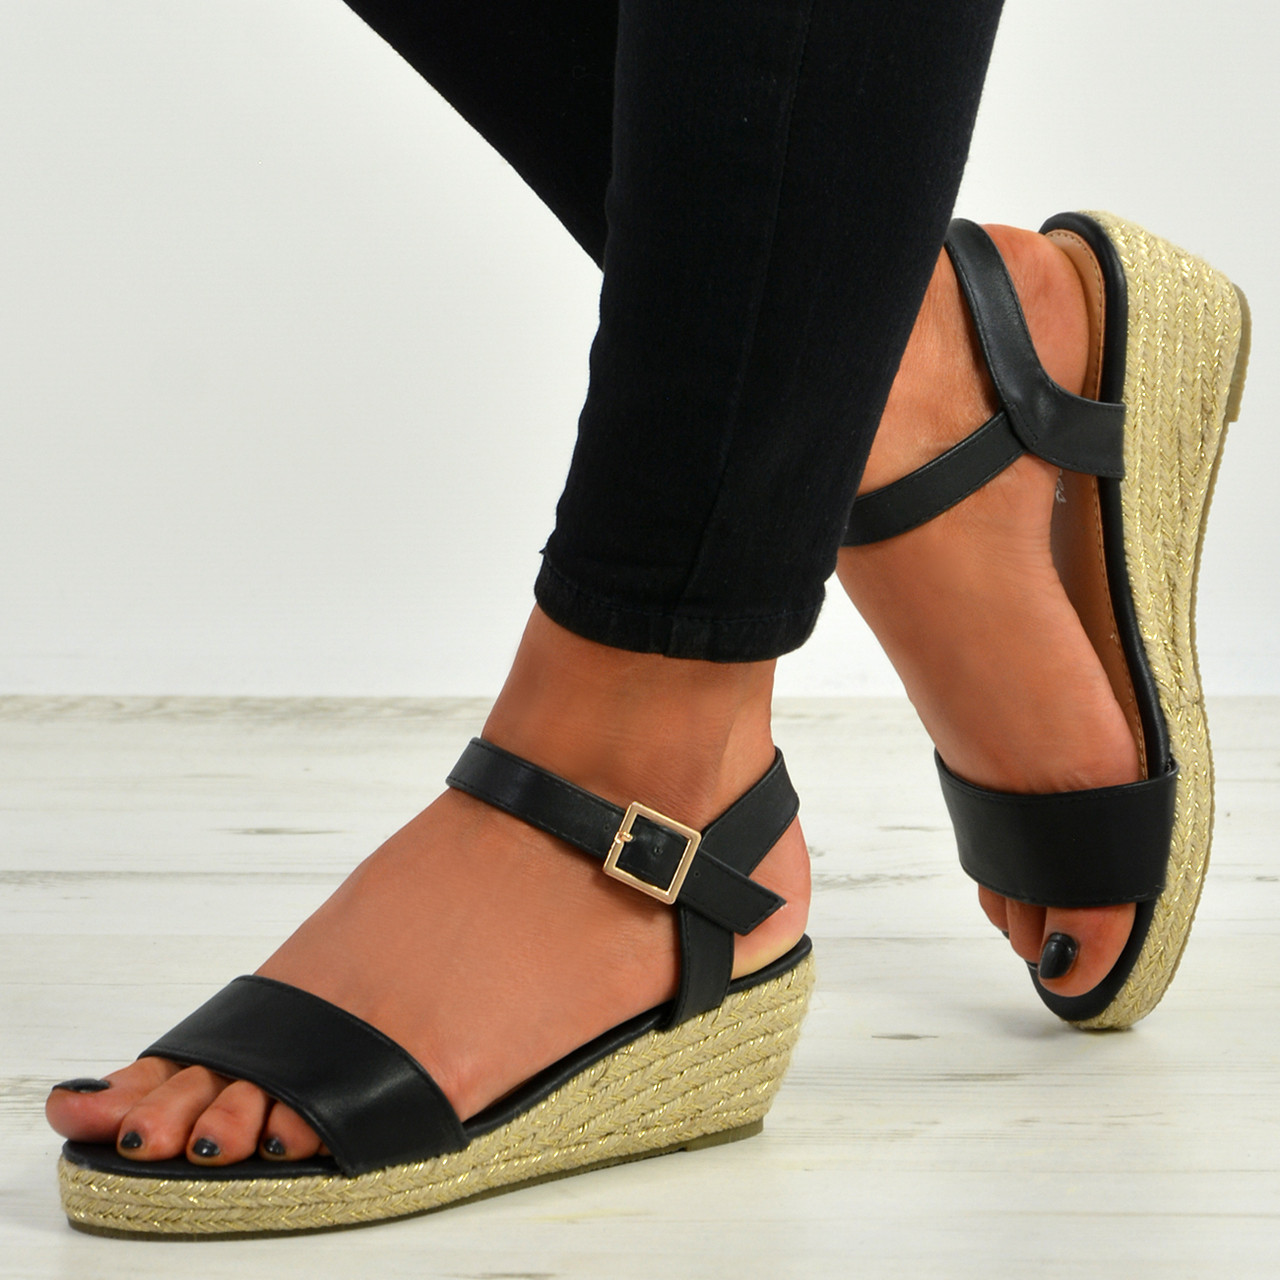 33ef989eac7 Brisa Black Espadrille Wedge Sandals